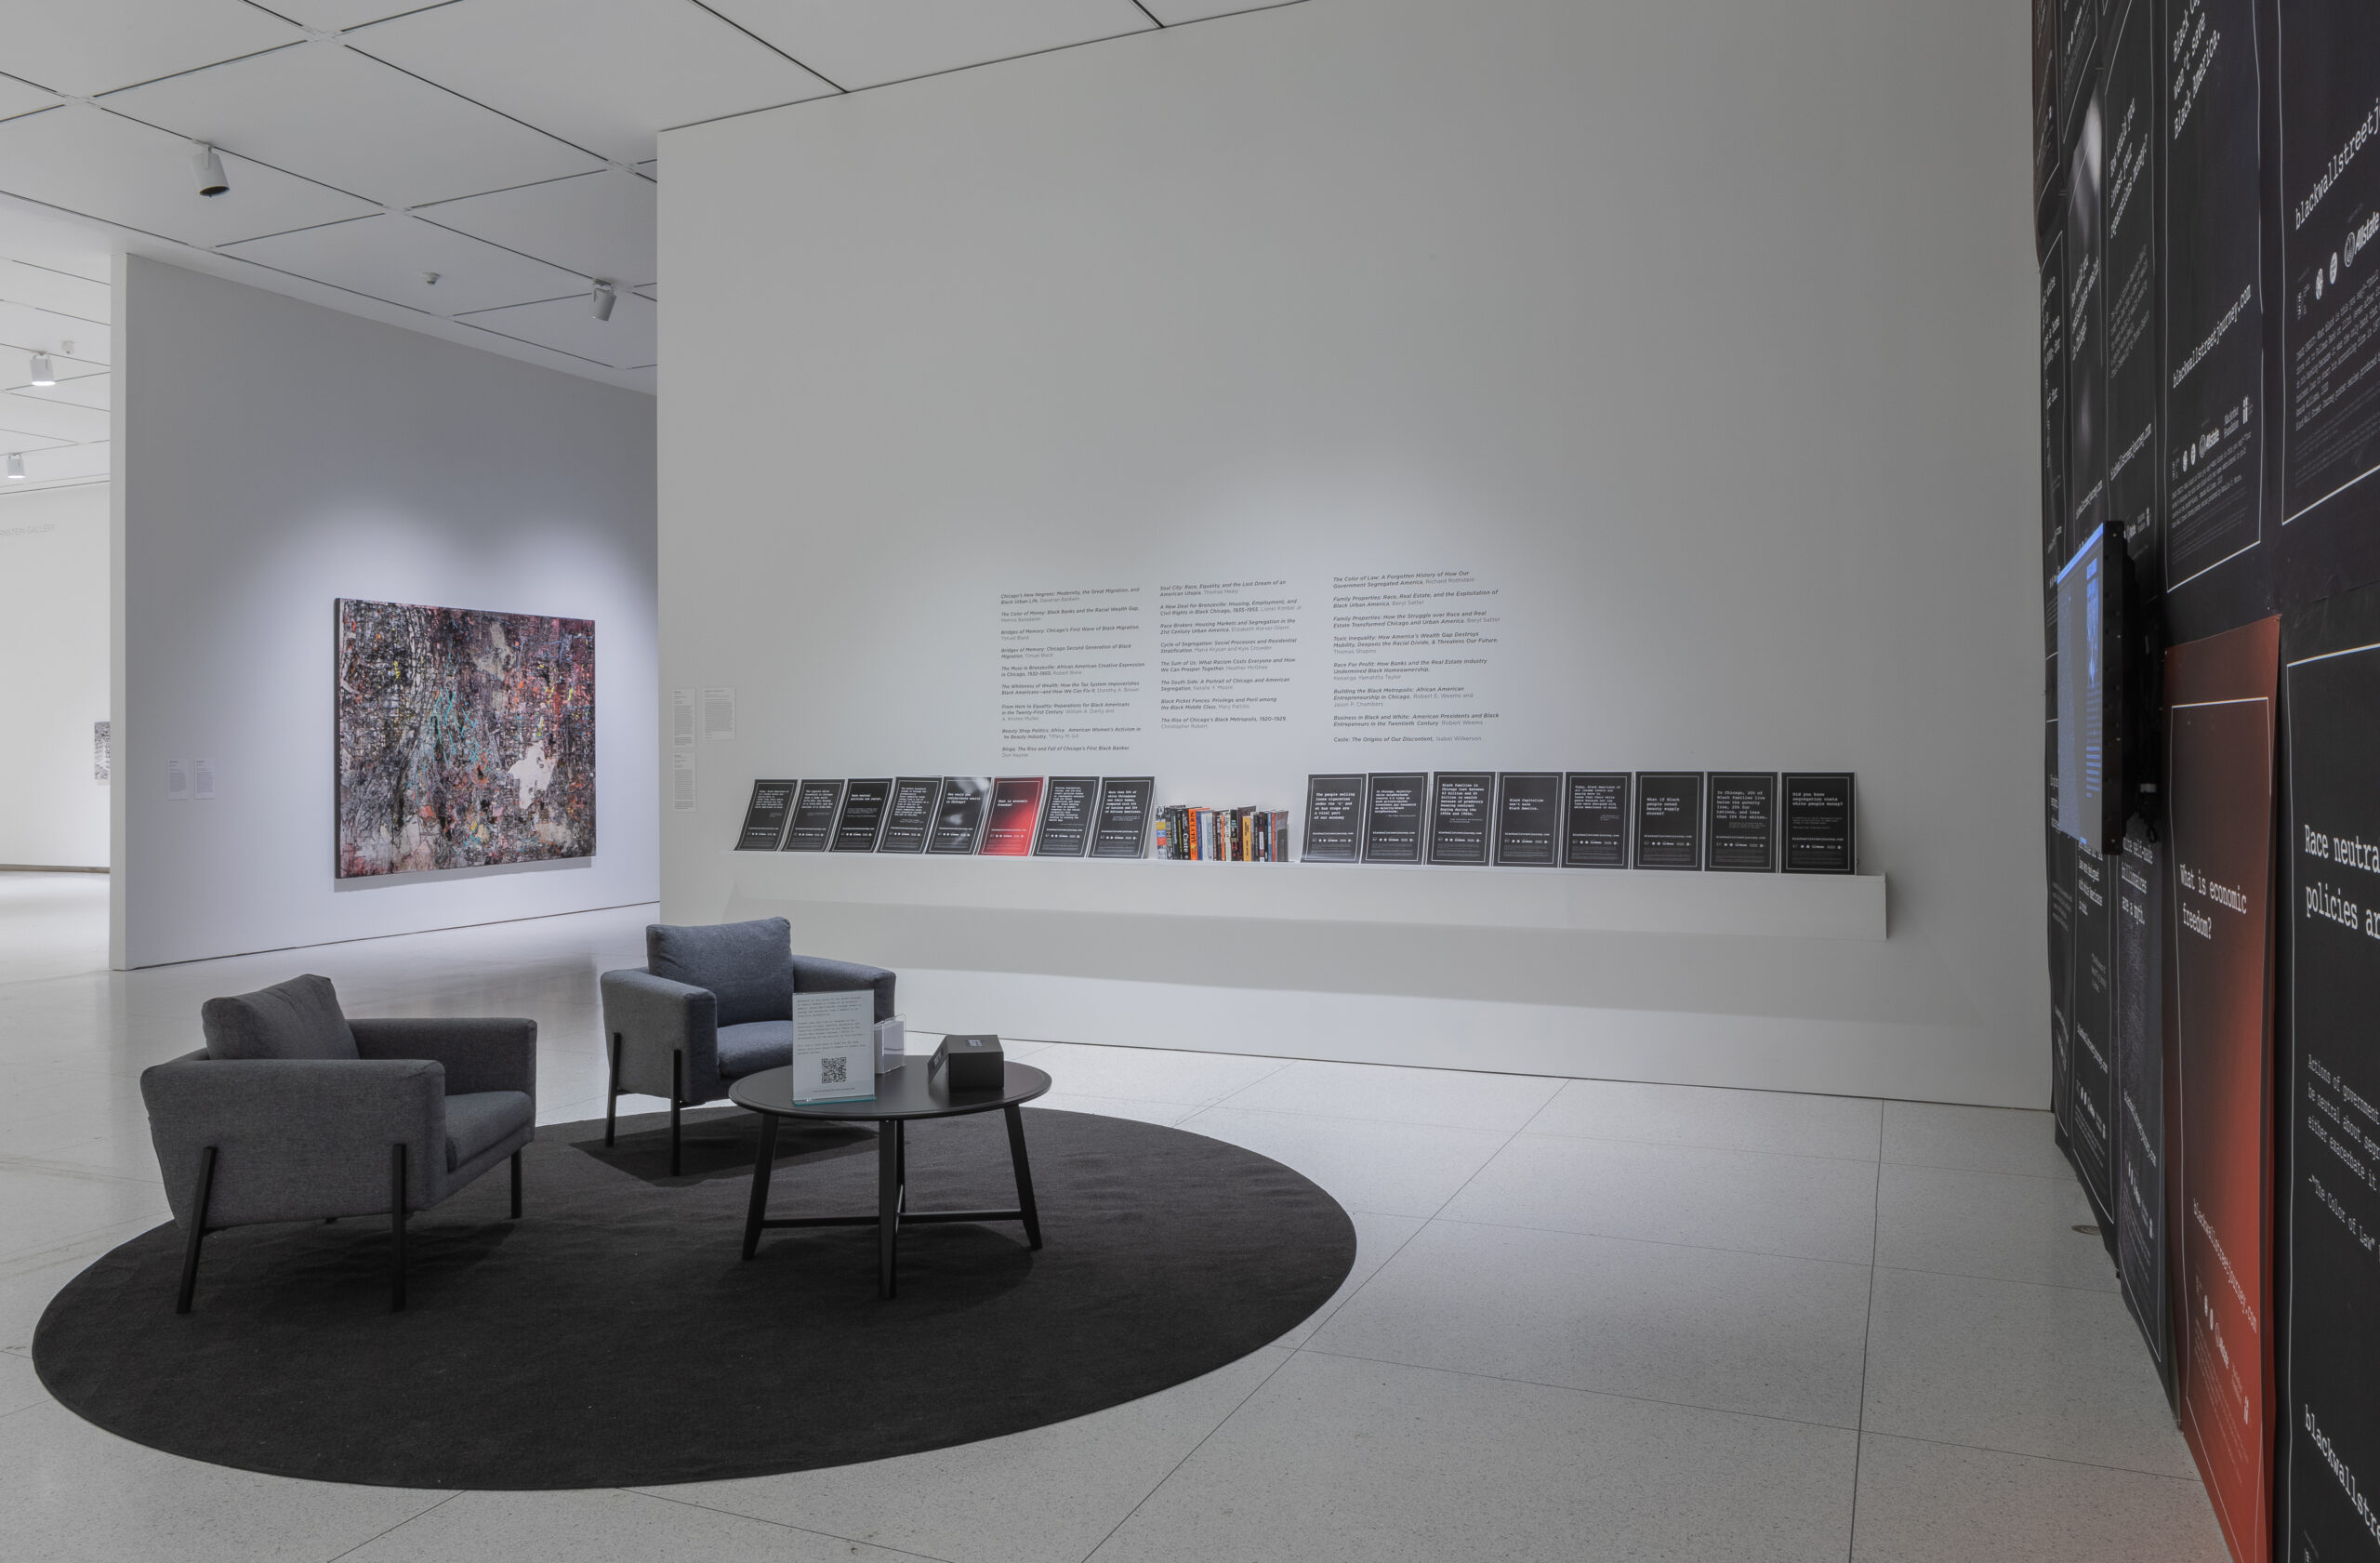 Gallery installation with a seating area, posters, and a large painting in the background.